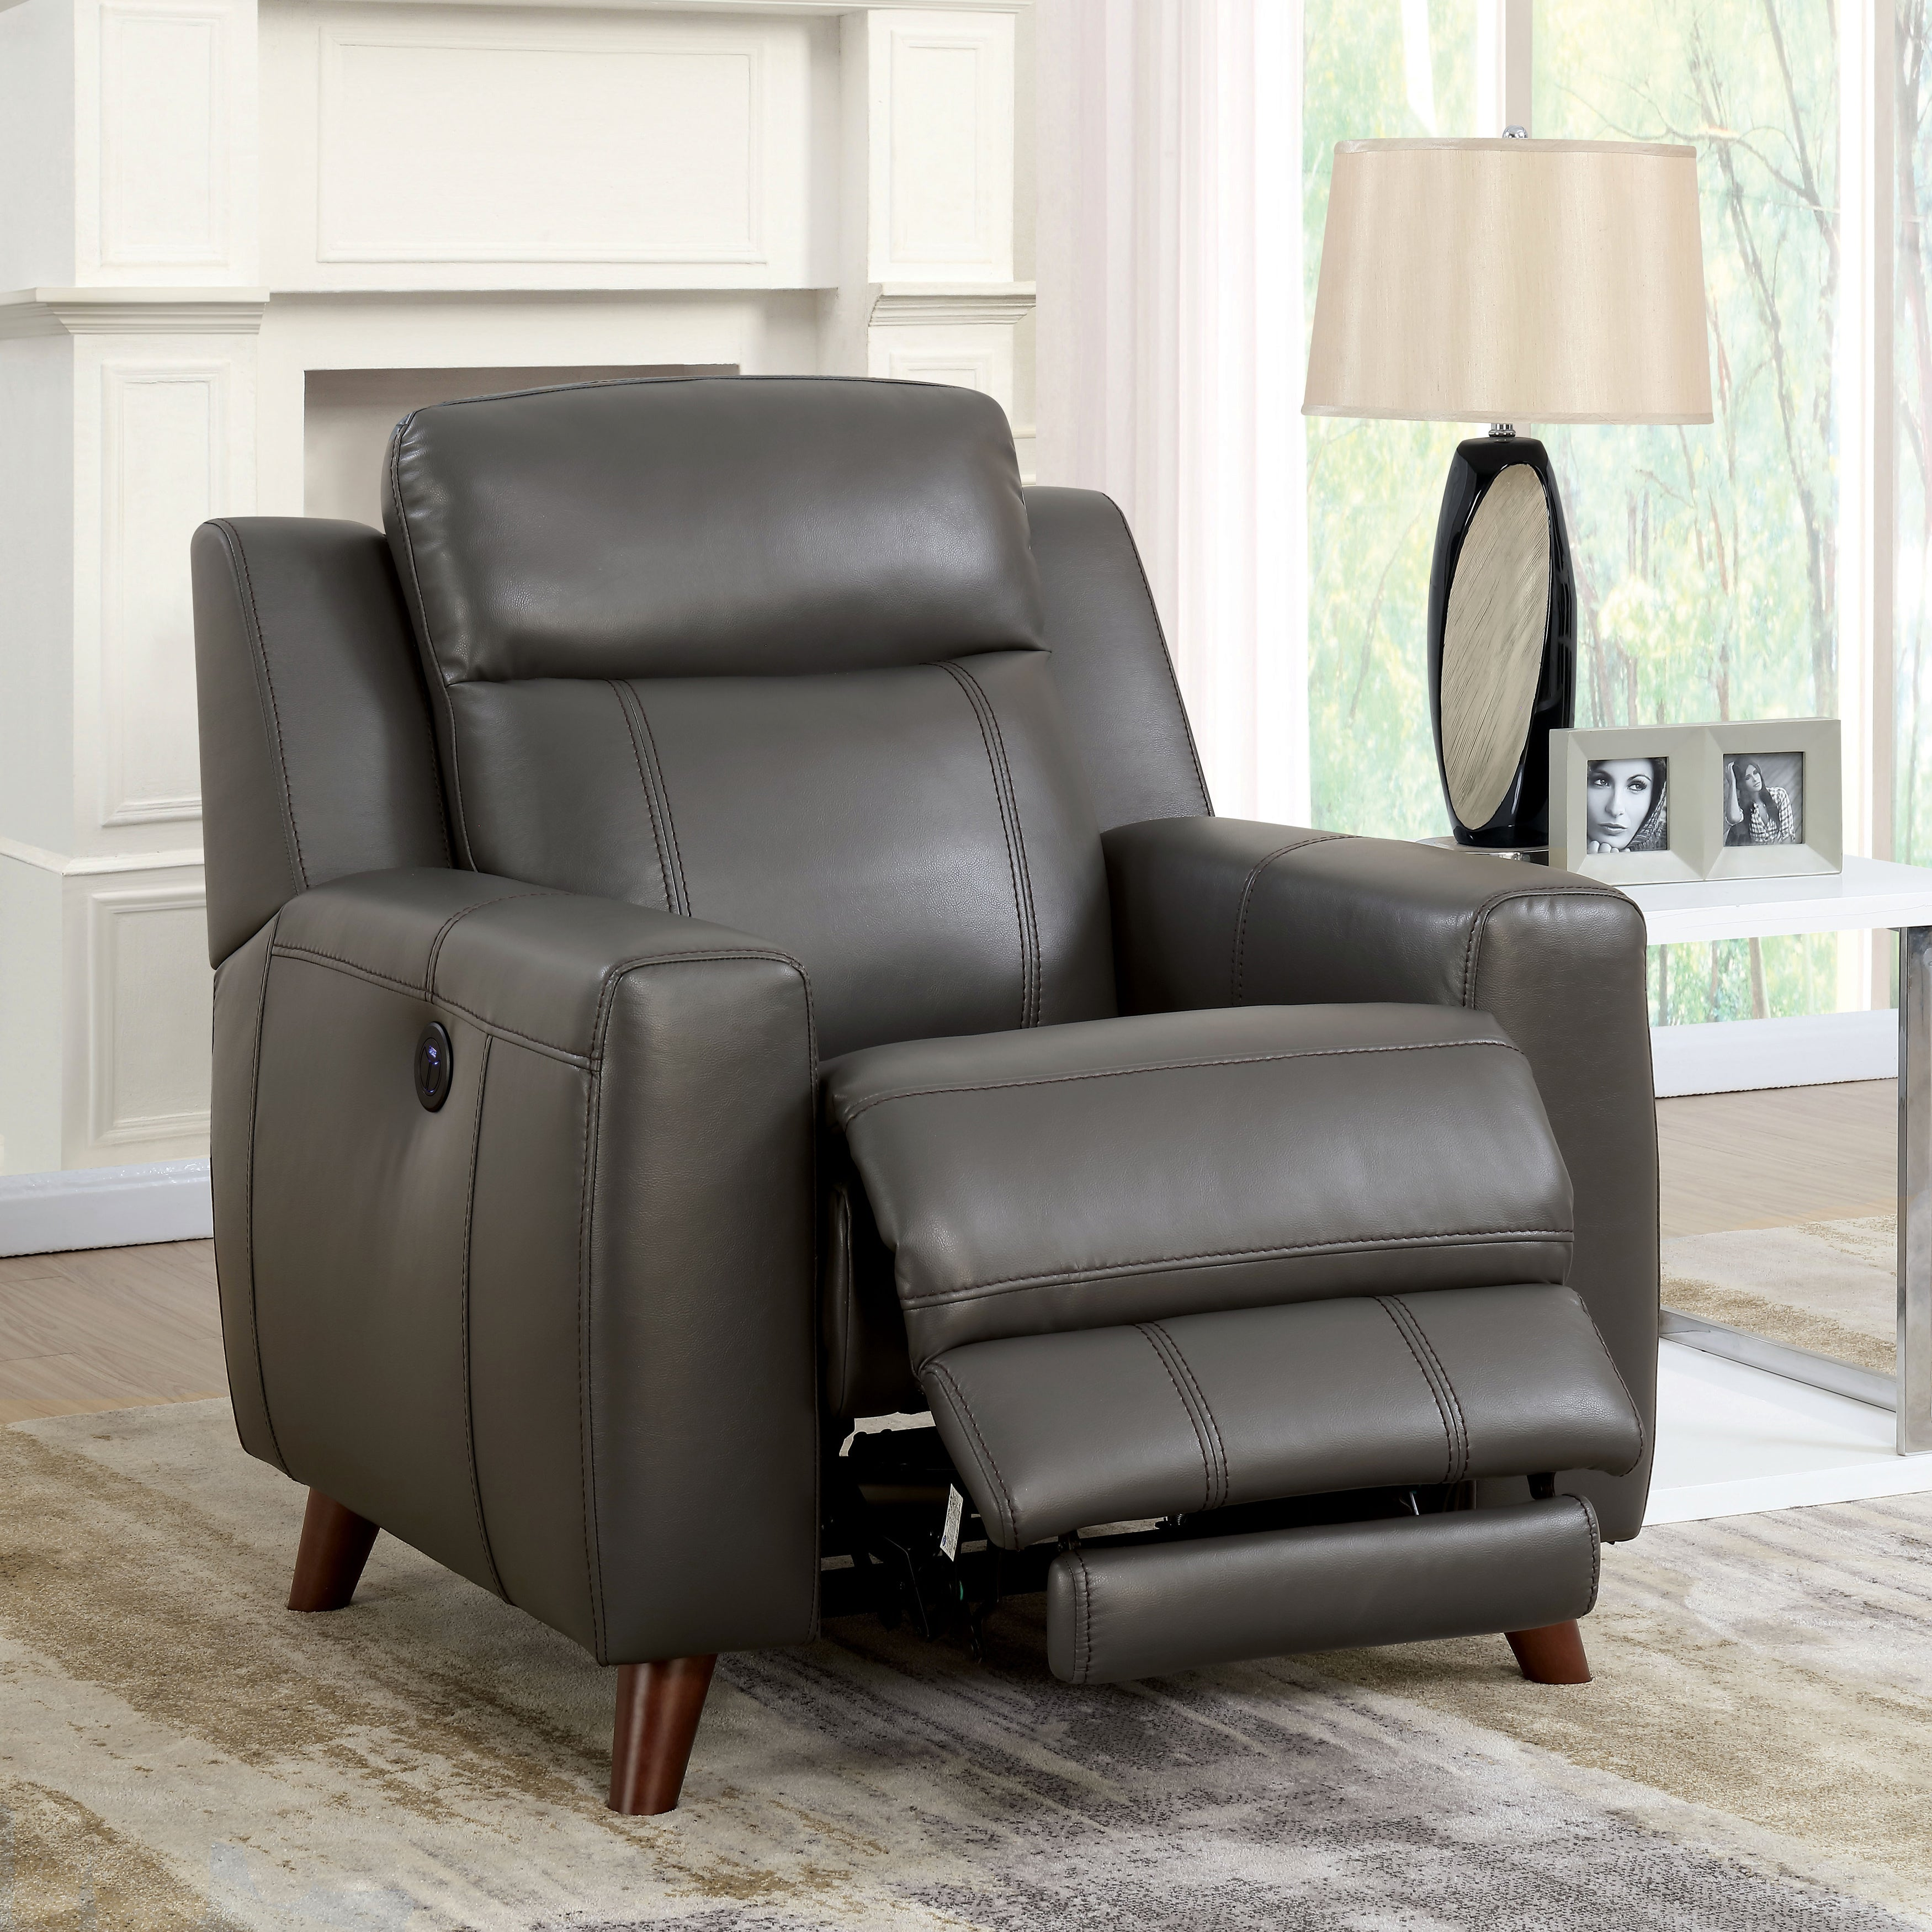 Astounding Tepperen Modern Grey Upholstered Recliner Chair By Foa Onthecornerstone Fun Painted Chair Ideas Images Onthecornerstoneorg